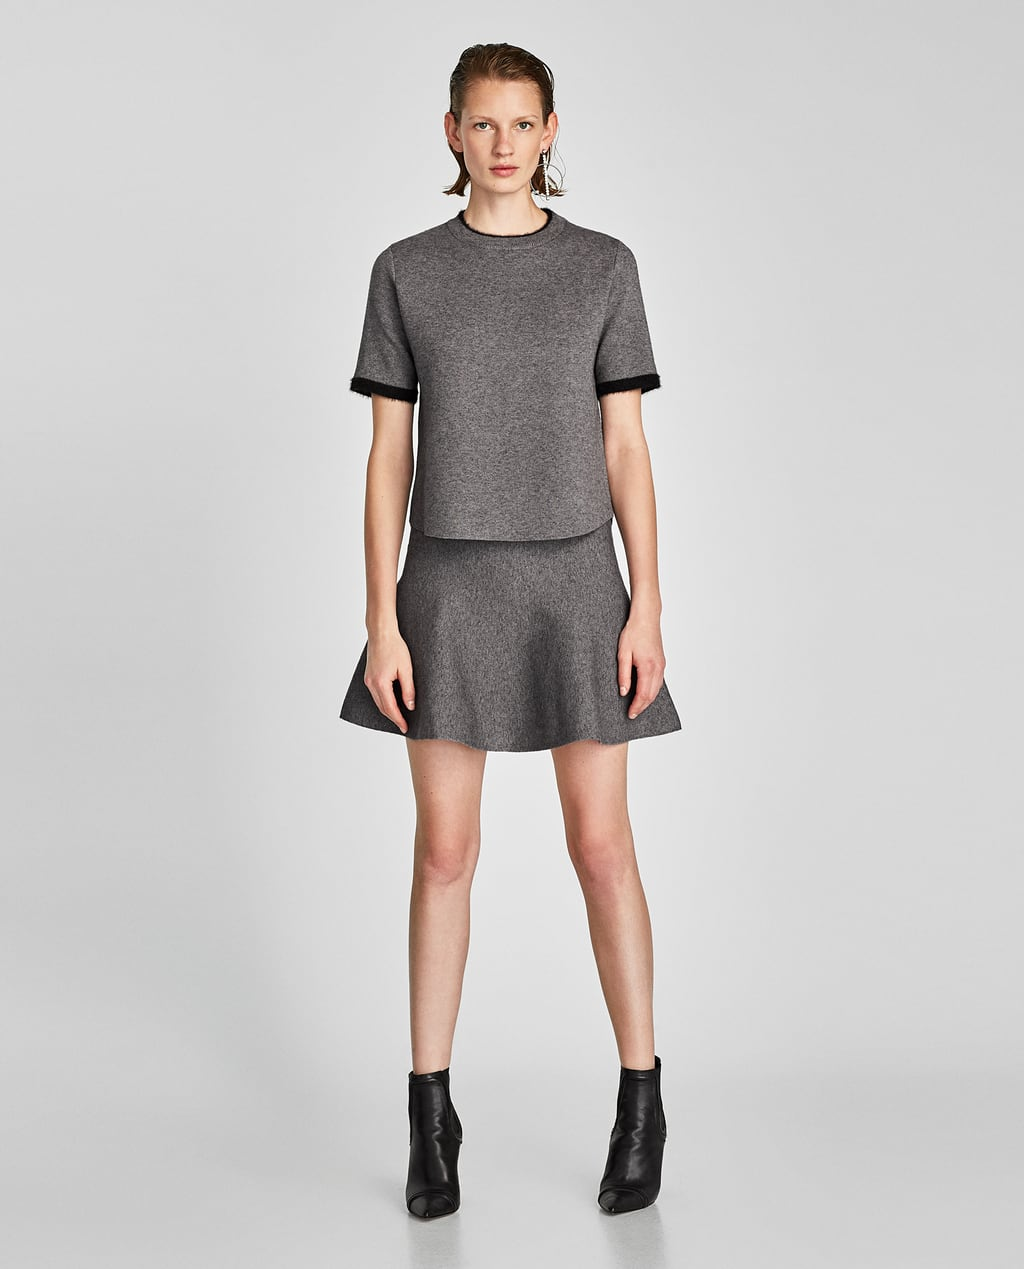 SHORT SLEEVE SWEATER - Tops-TOPS-WOMAN-SALE | ZARA United States